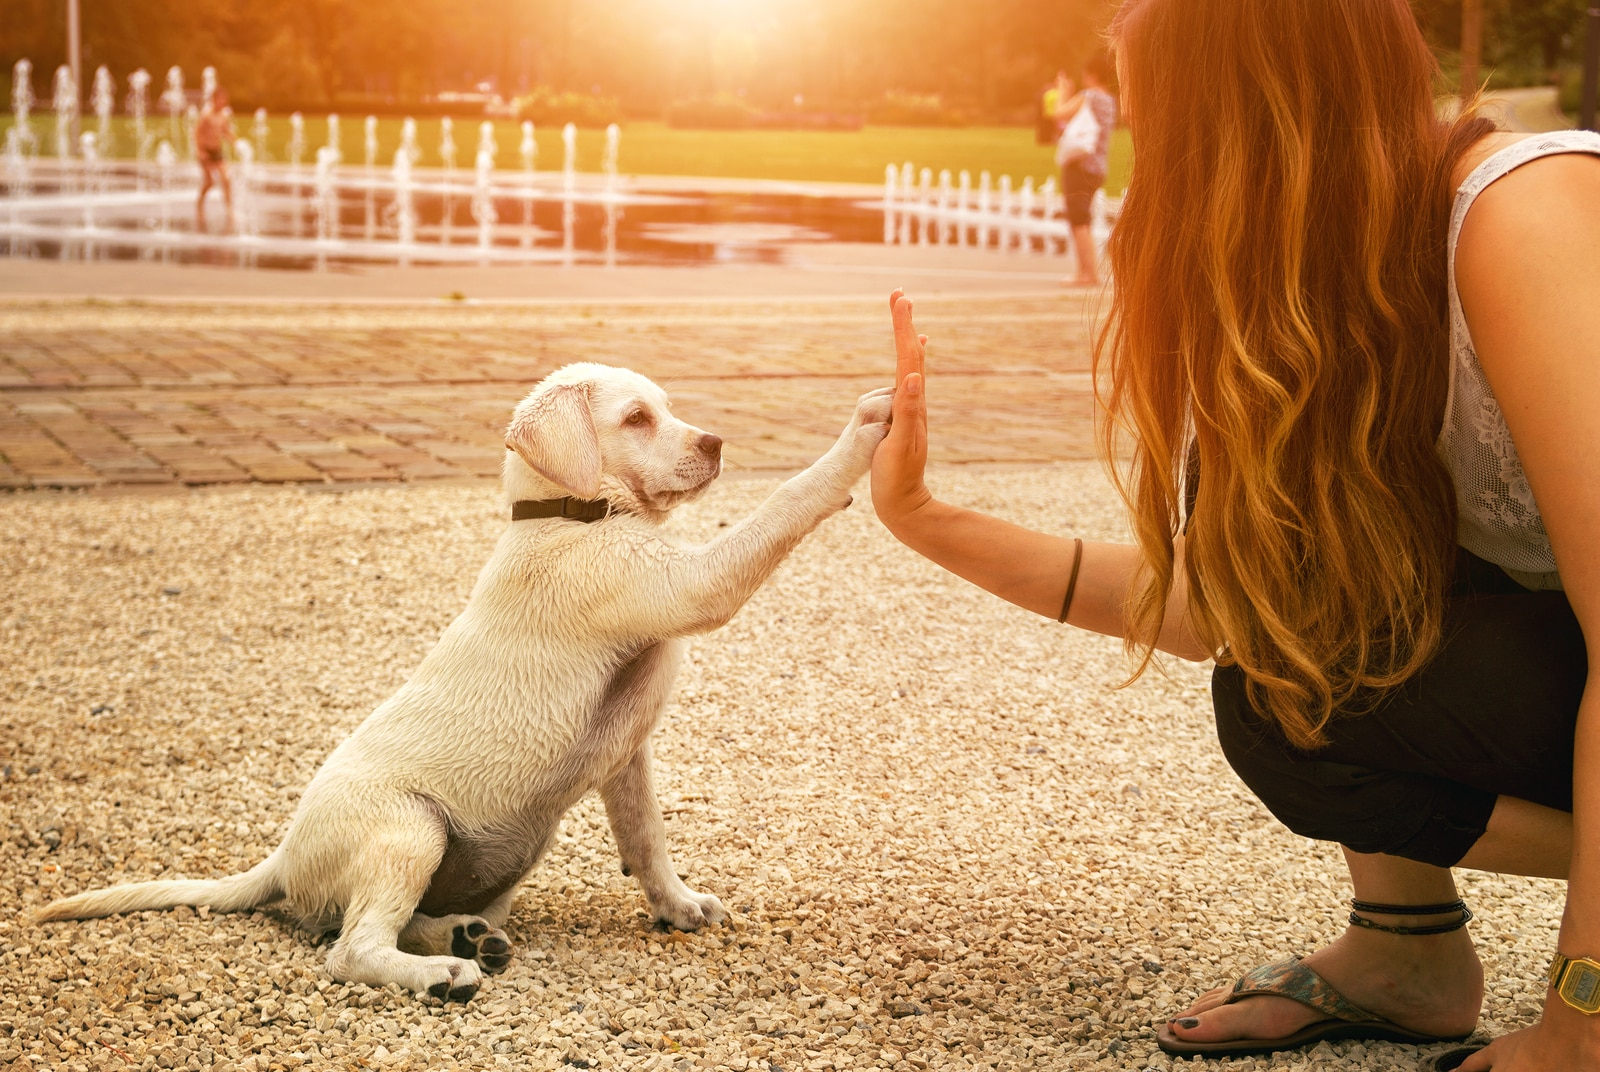 Yellow lab puppy and woman high-fiving in park at sunset.